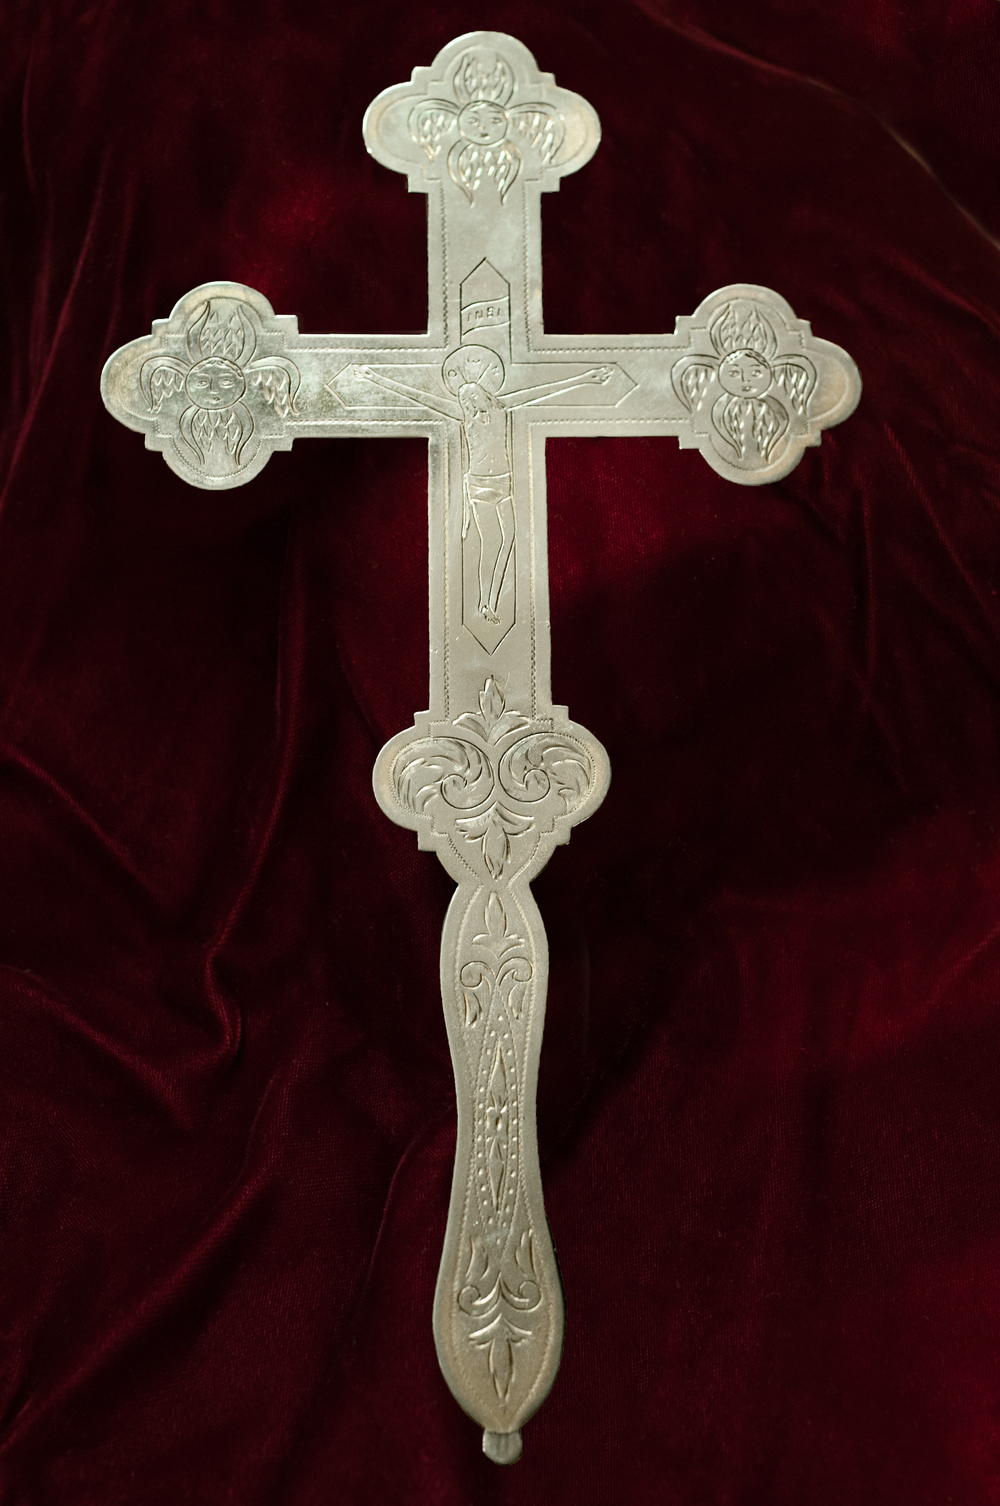 Silver cross in the tradition of the Eastern Orthodox Church.